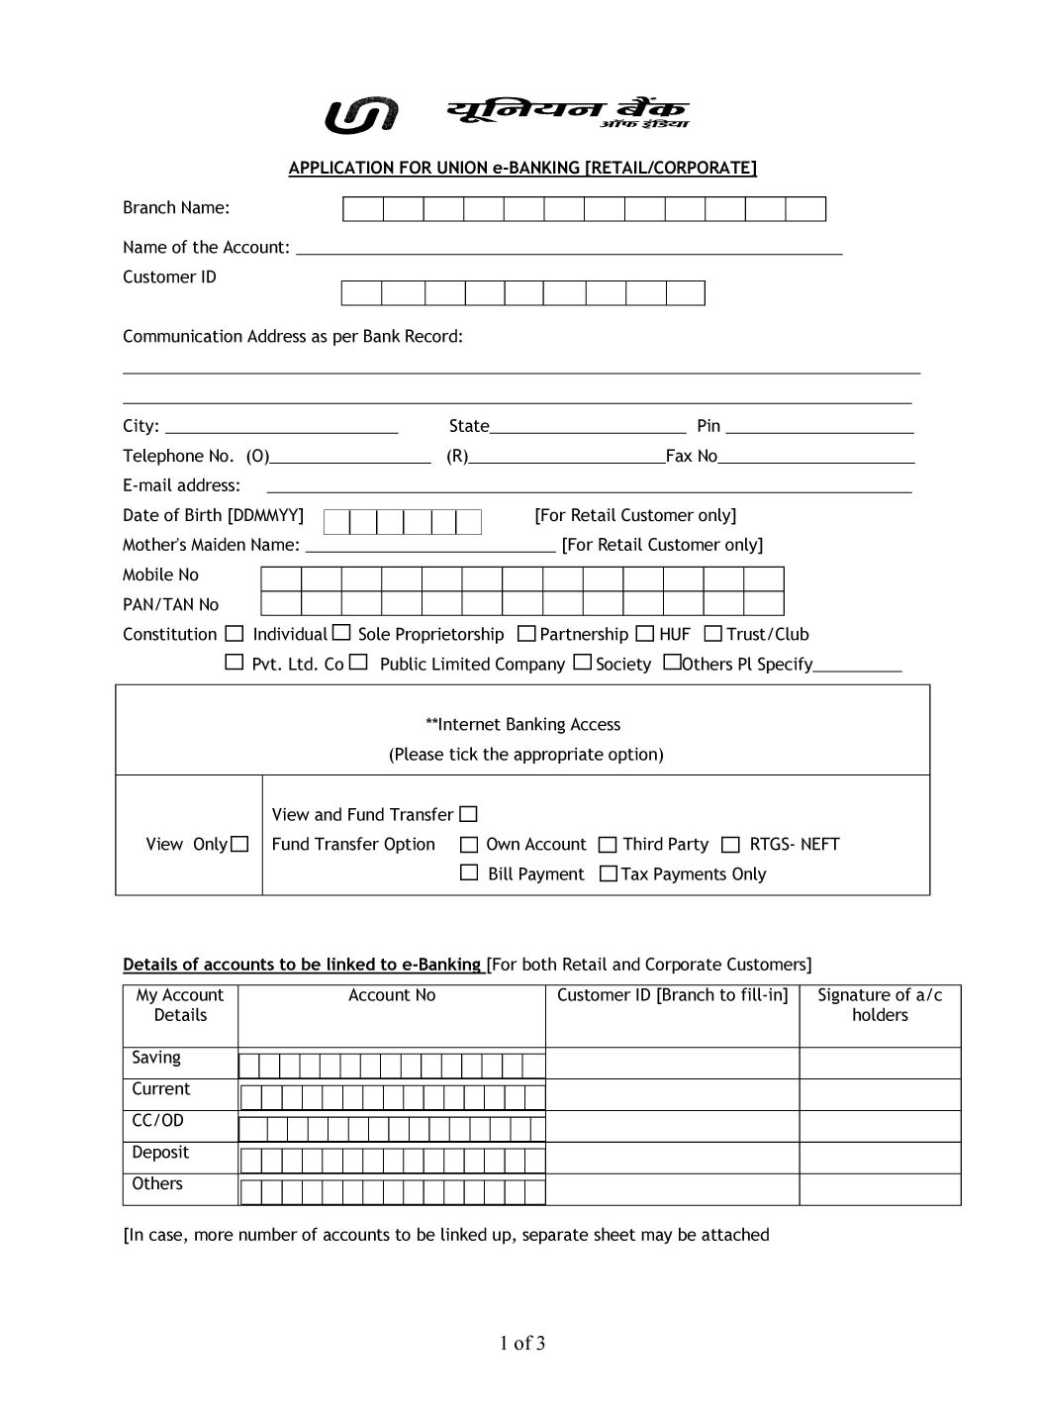 Sbi internet banking application form pdf